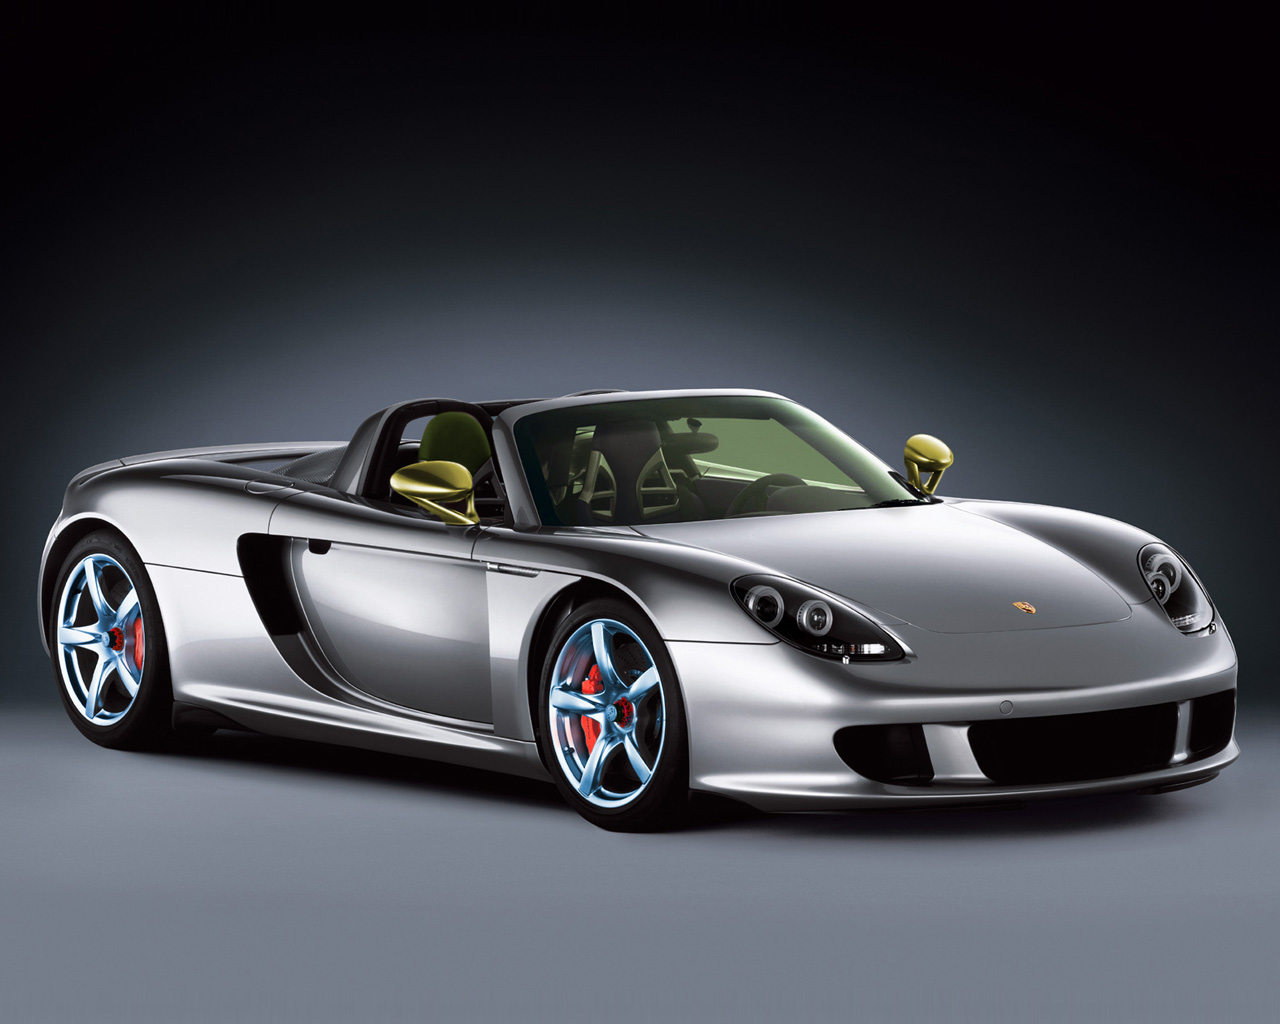 Luxury car on a gray gradient background - wallpaper